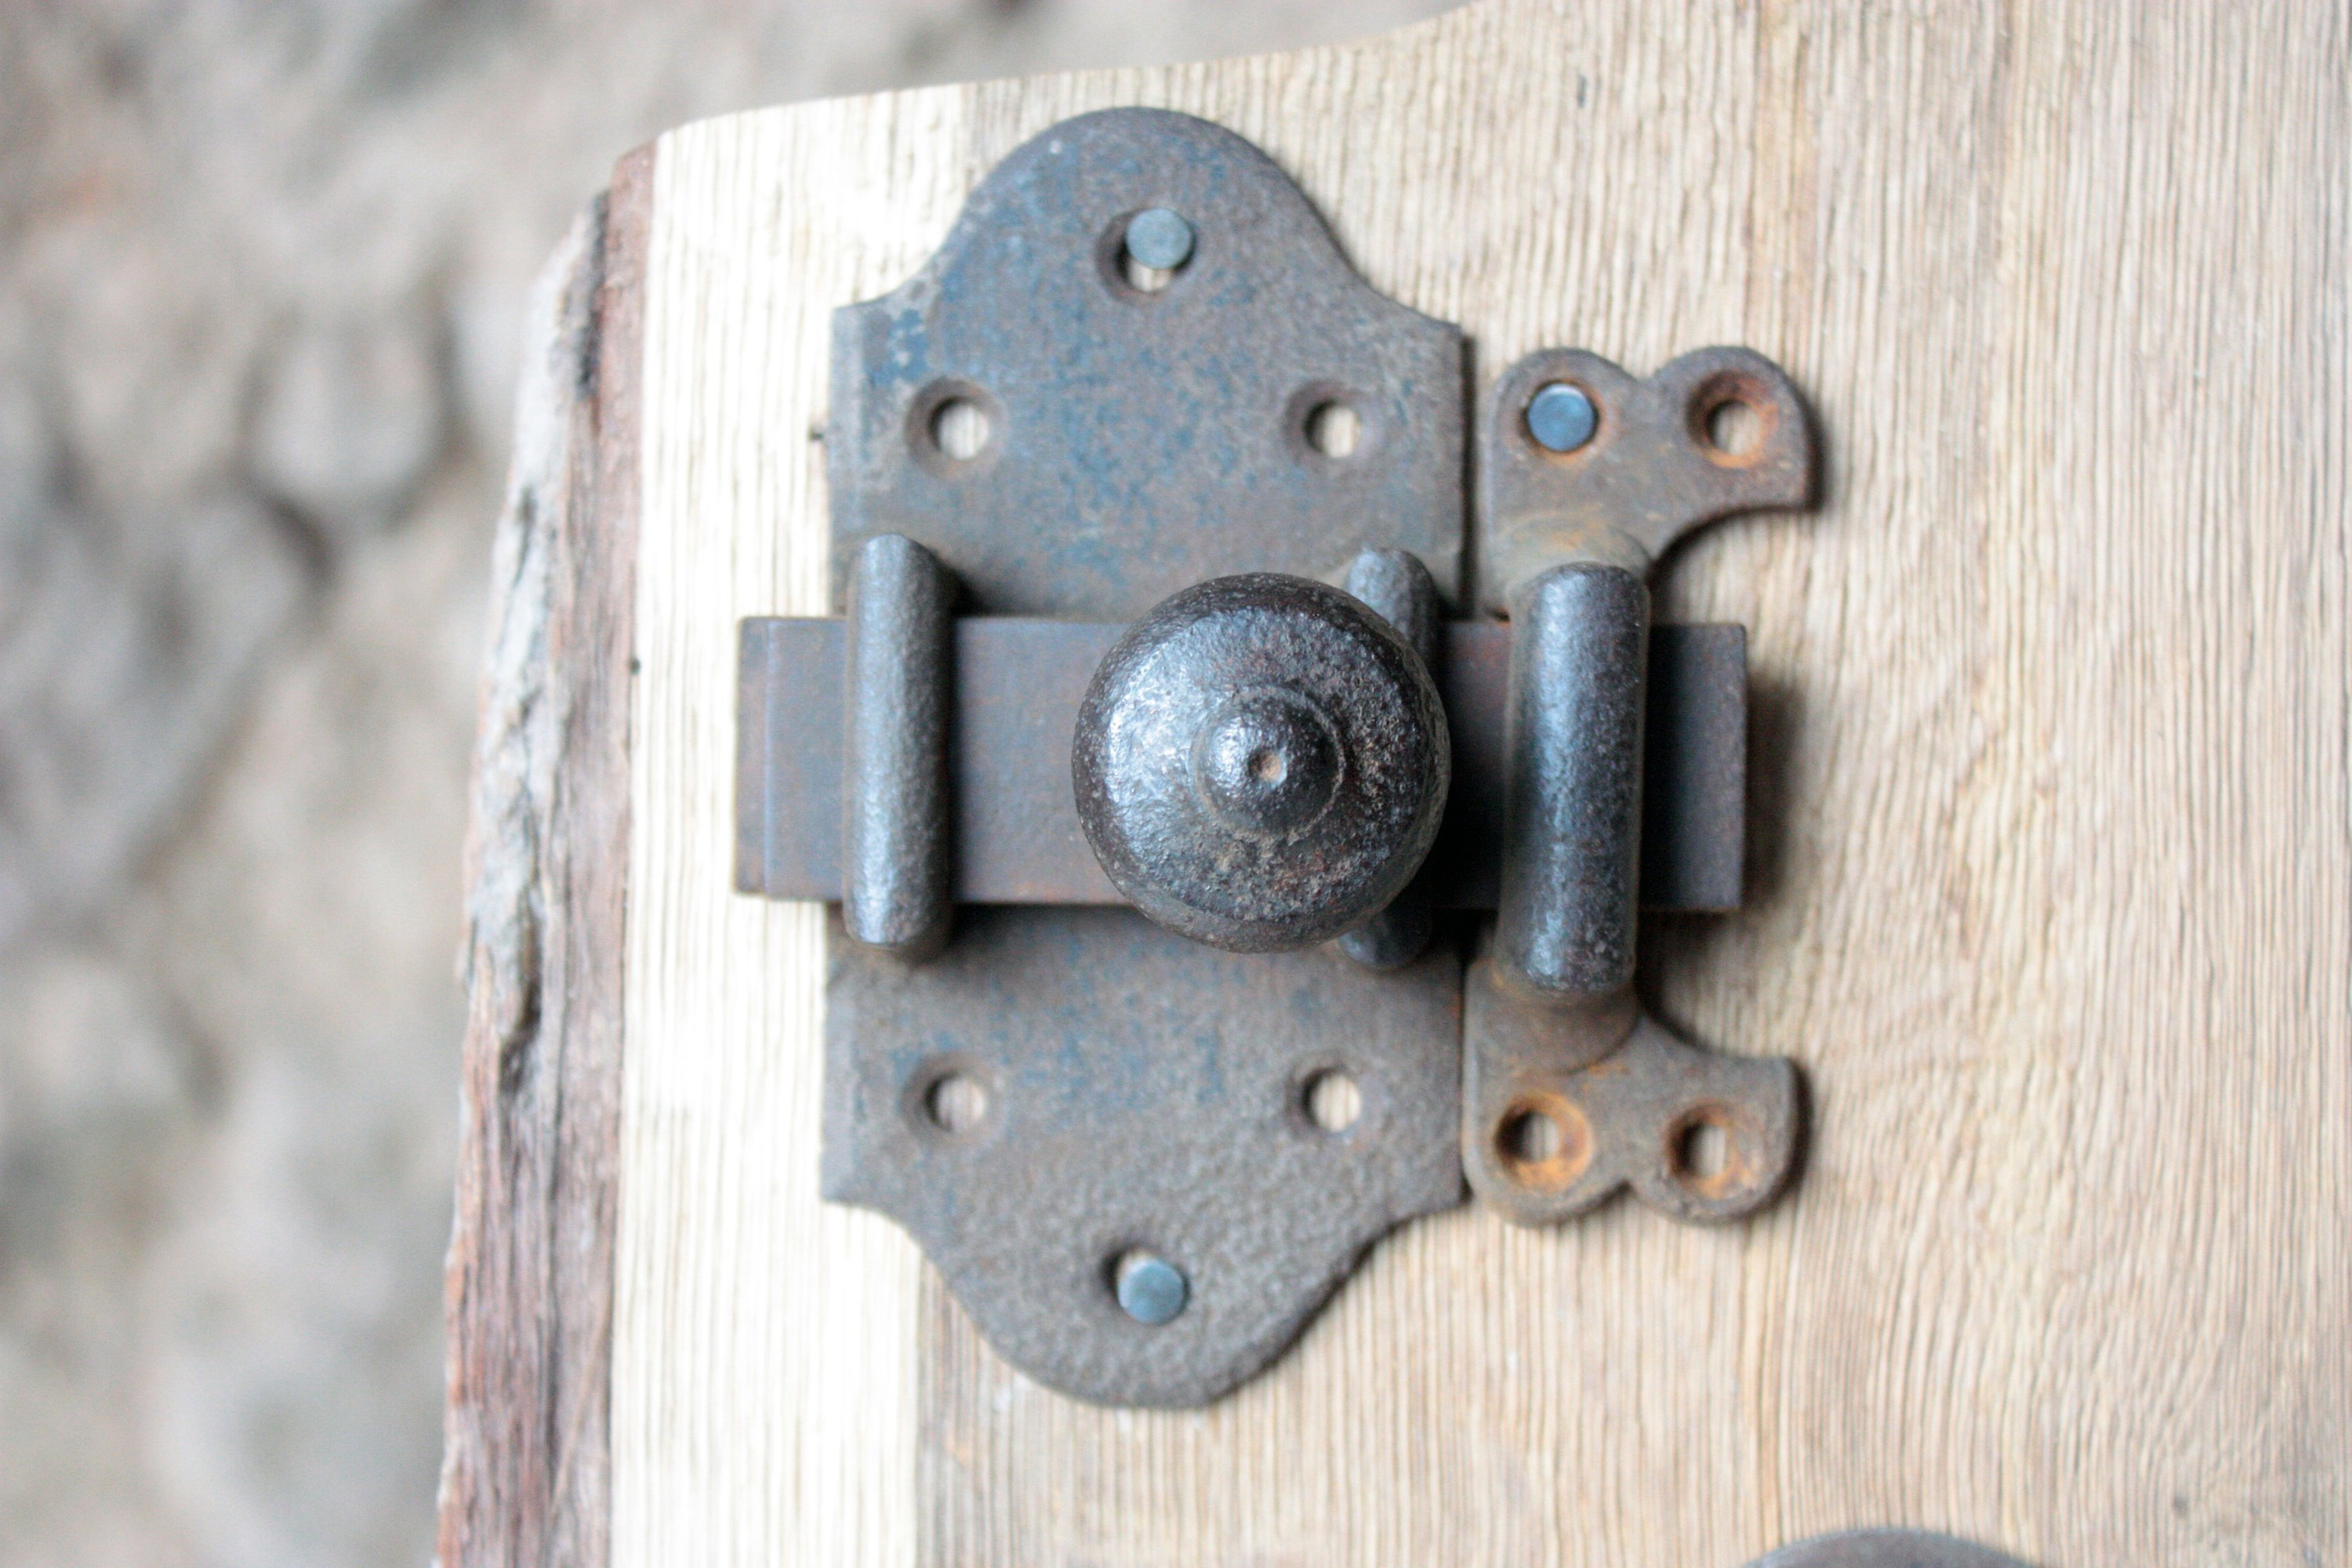 French Antique Door Lock With Closure In Forged Iron For Your Rustic Farmhouse Decor